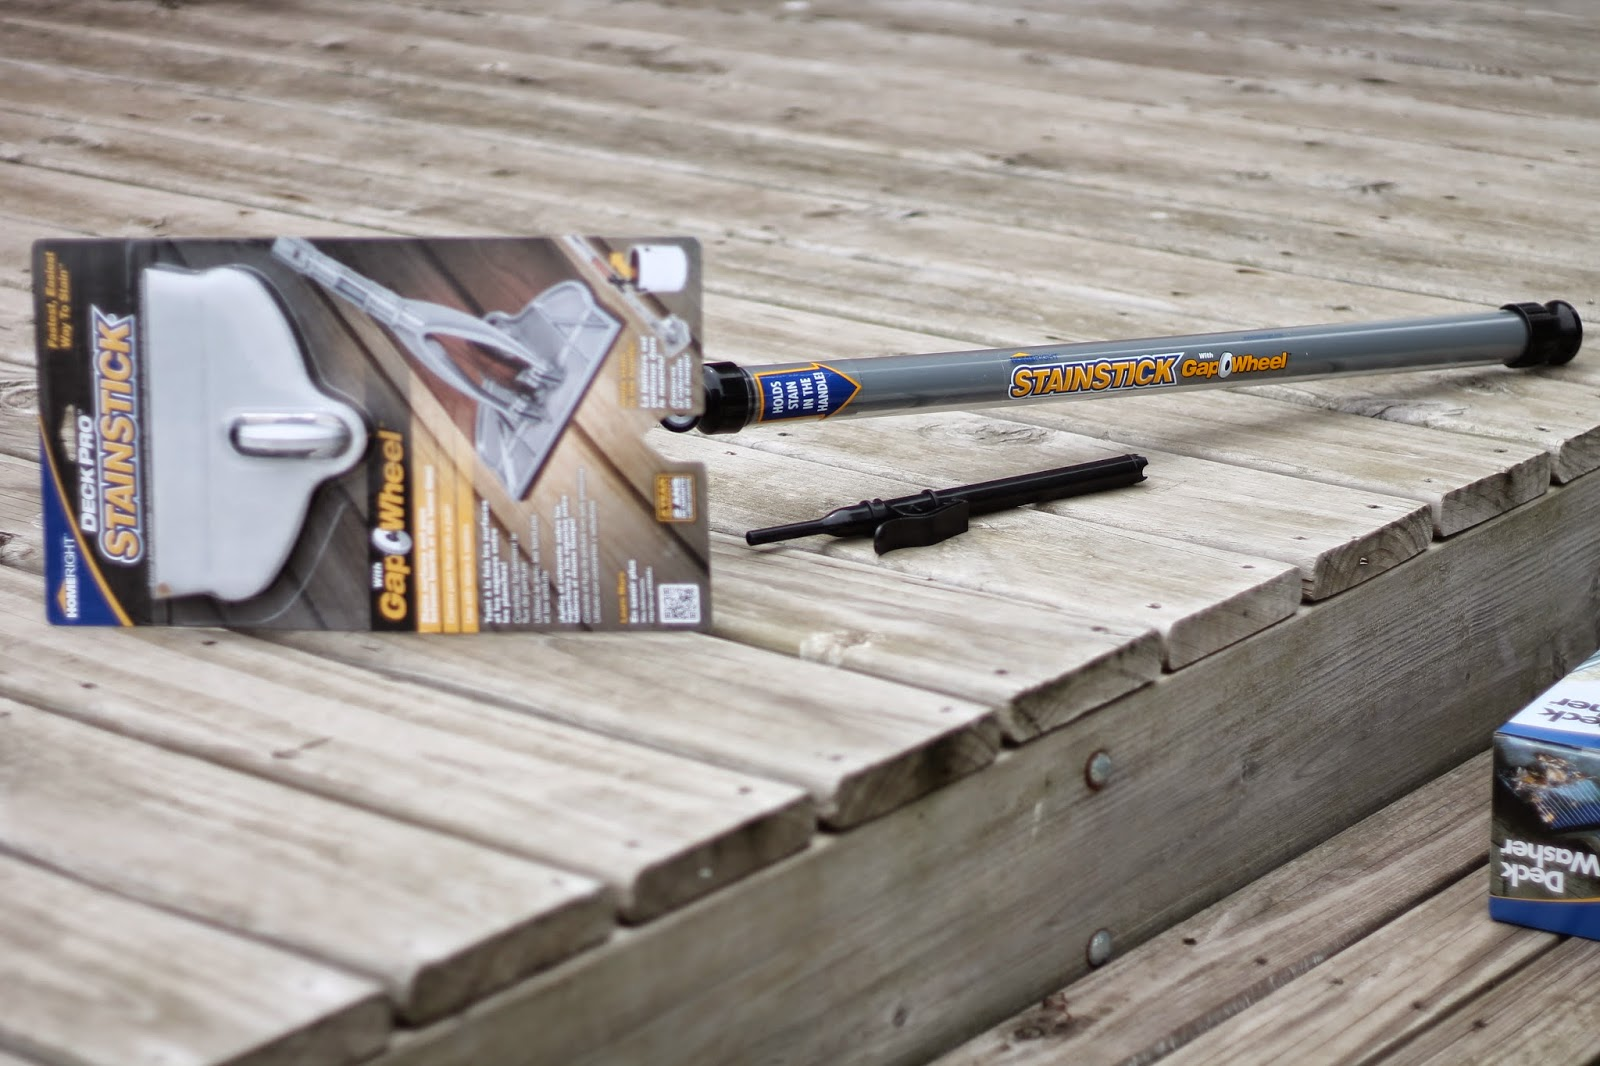 Diy Projects Made Easy With Homeright Review Amp Giveaway